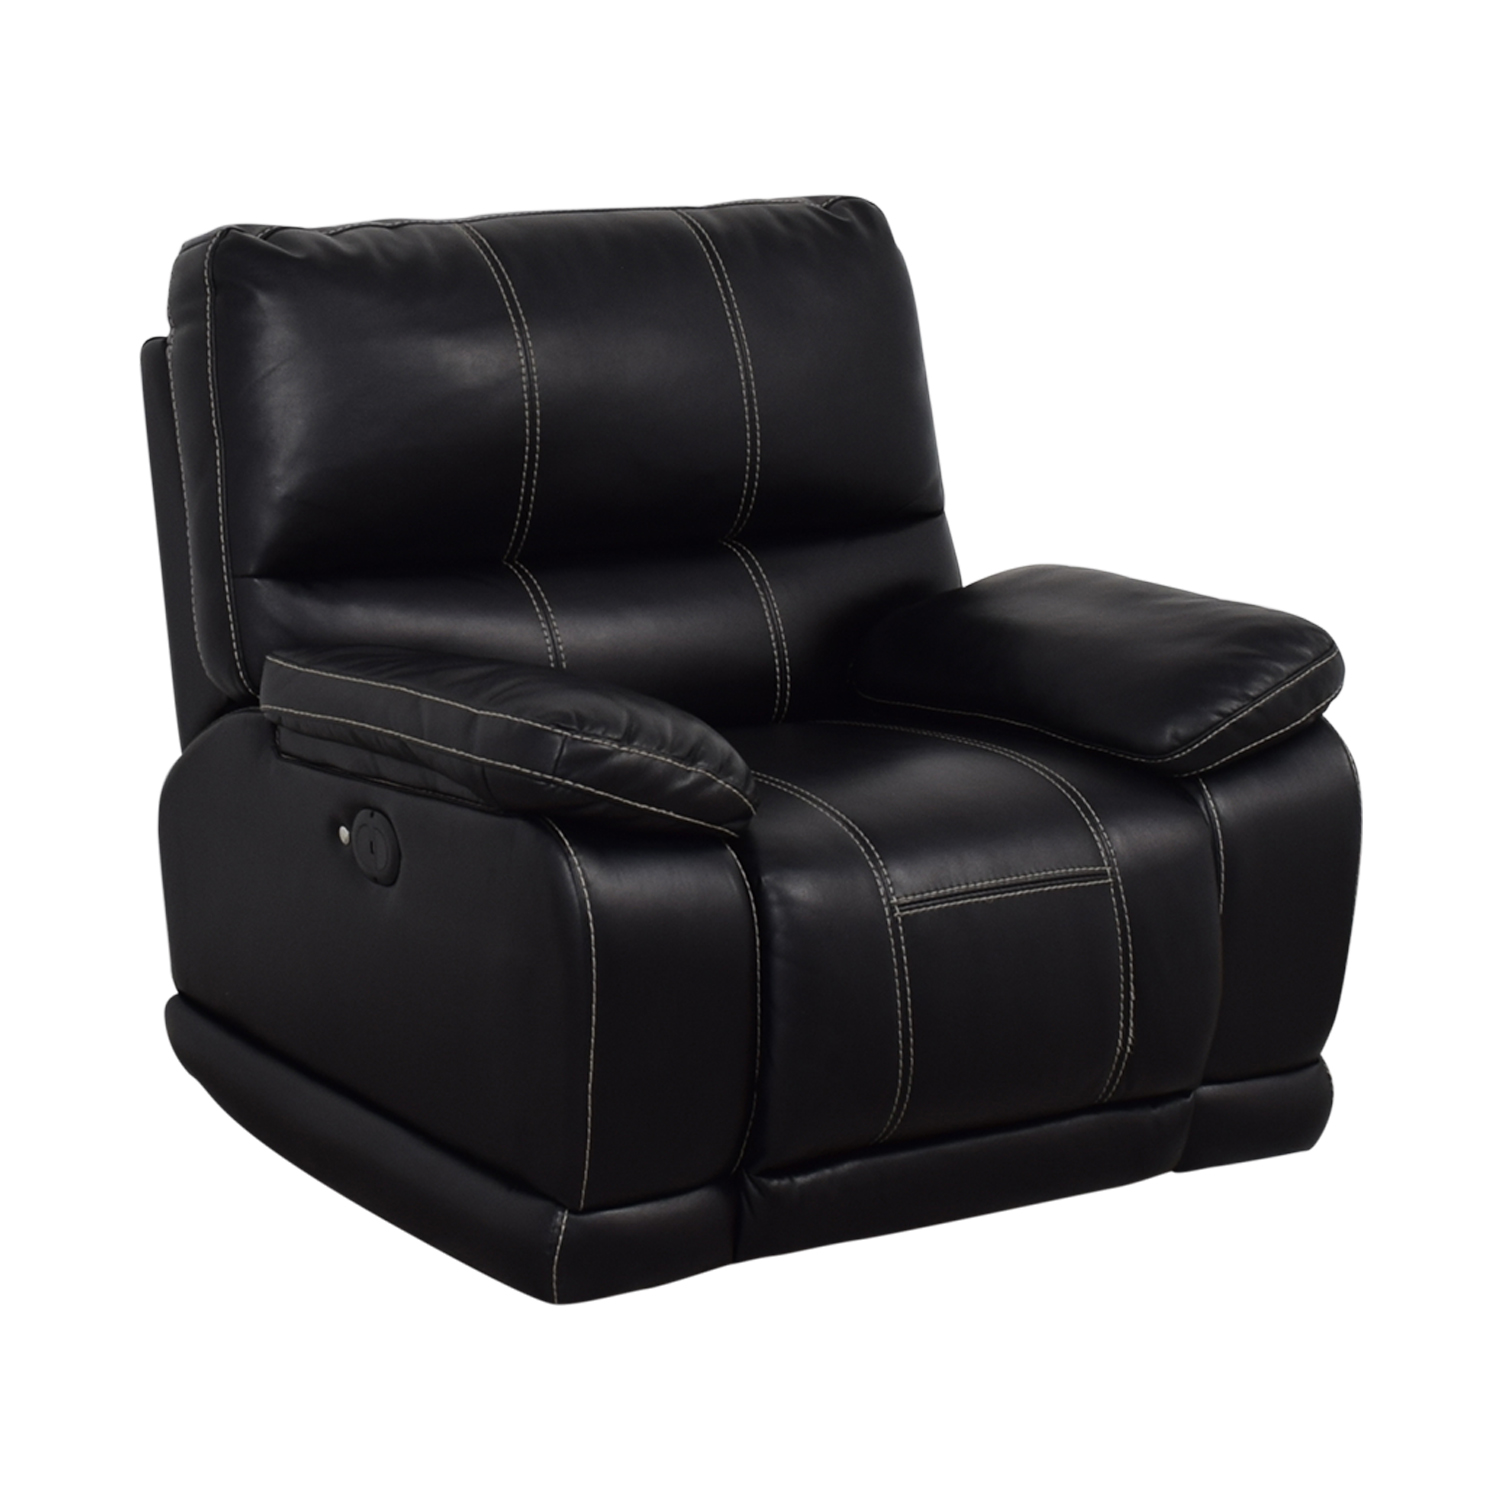 Klaussner Klaussner Black Reclining Chair on sale